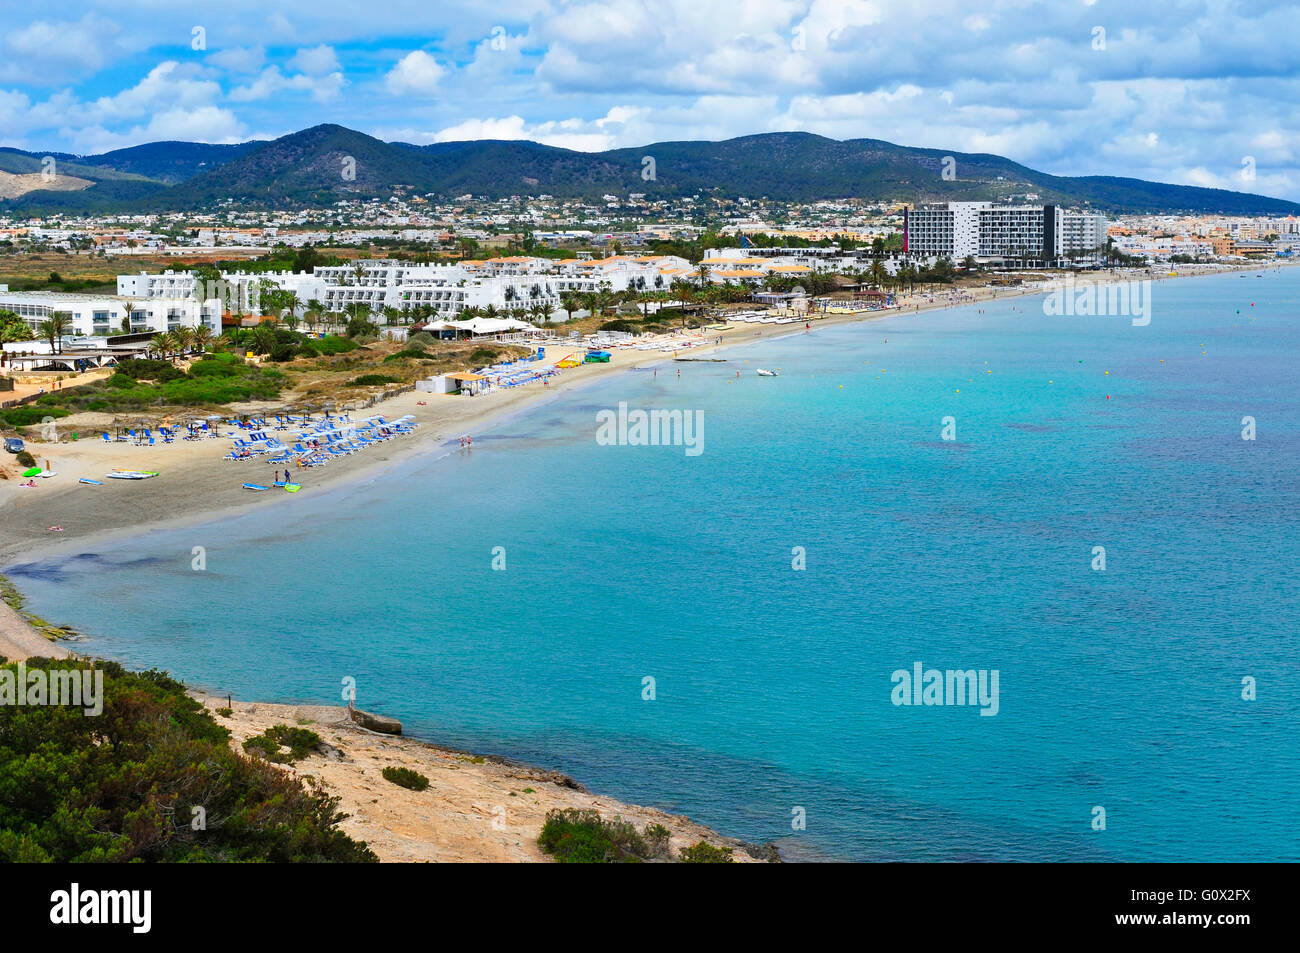 a panoramic view of the Platja den Bossa beach in Ibiza Town, in Ibiza Island, Balearic Islands, Spain - Stock Image